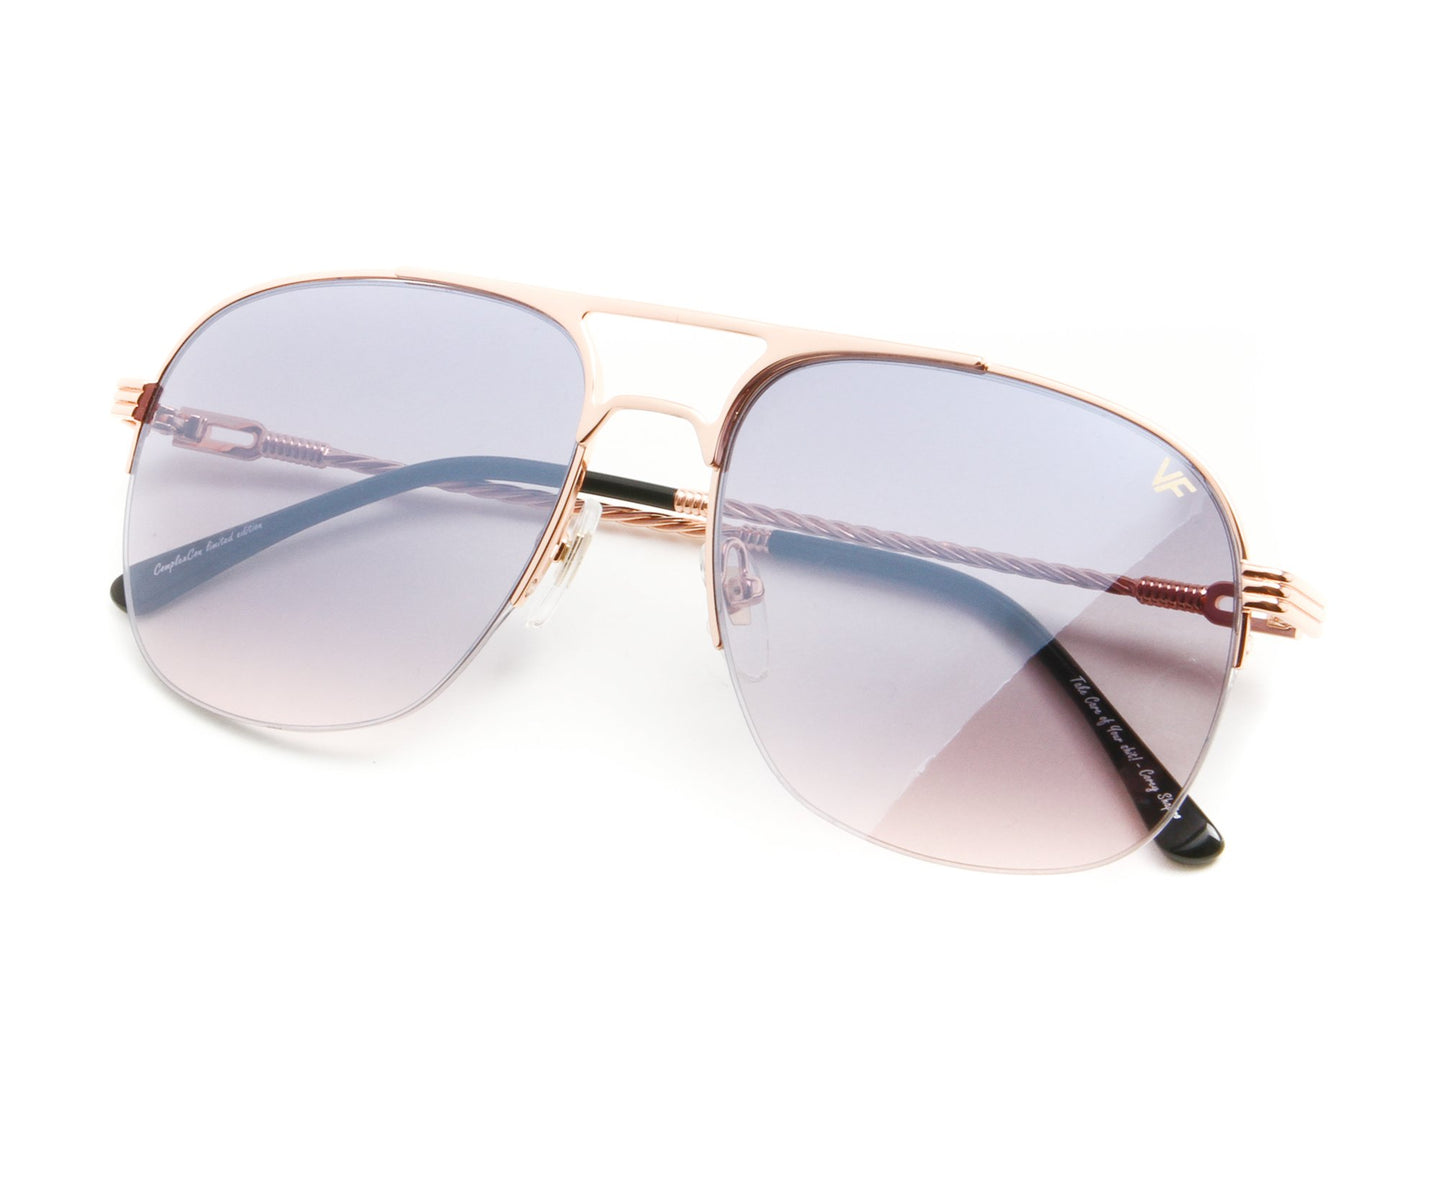 VF Snatch Half Rim 18KT Rose Gold (Black / Pink) Thumb, VF Half-Rim , glasses frames, eyeglasses online, eyeglass frames, mens glasses, womens glasses, buy glasses online, designer eyeglasses, vintage sunglasses, retro sunglasses, vintage glasses, sunglass, eyeglass, glasses, lens, vintage frames company, vf